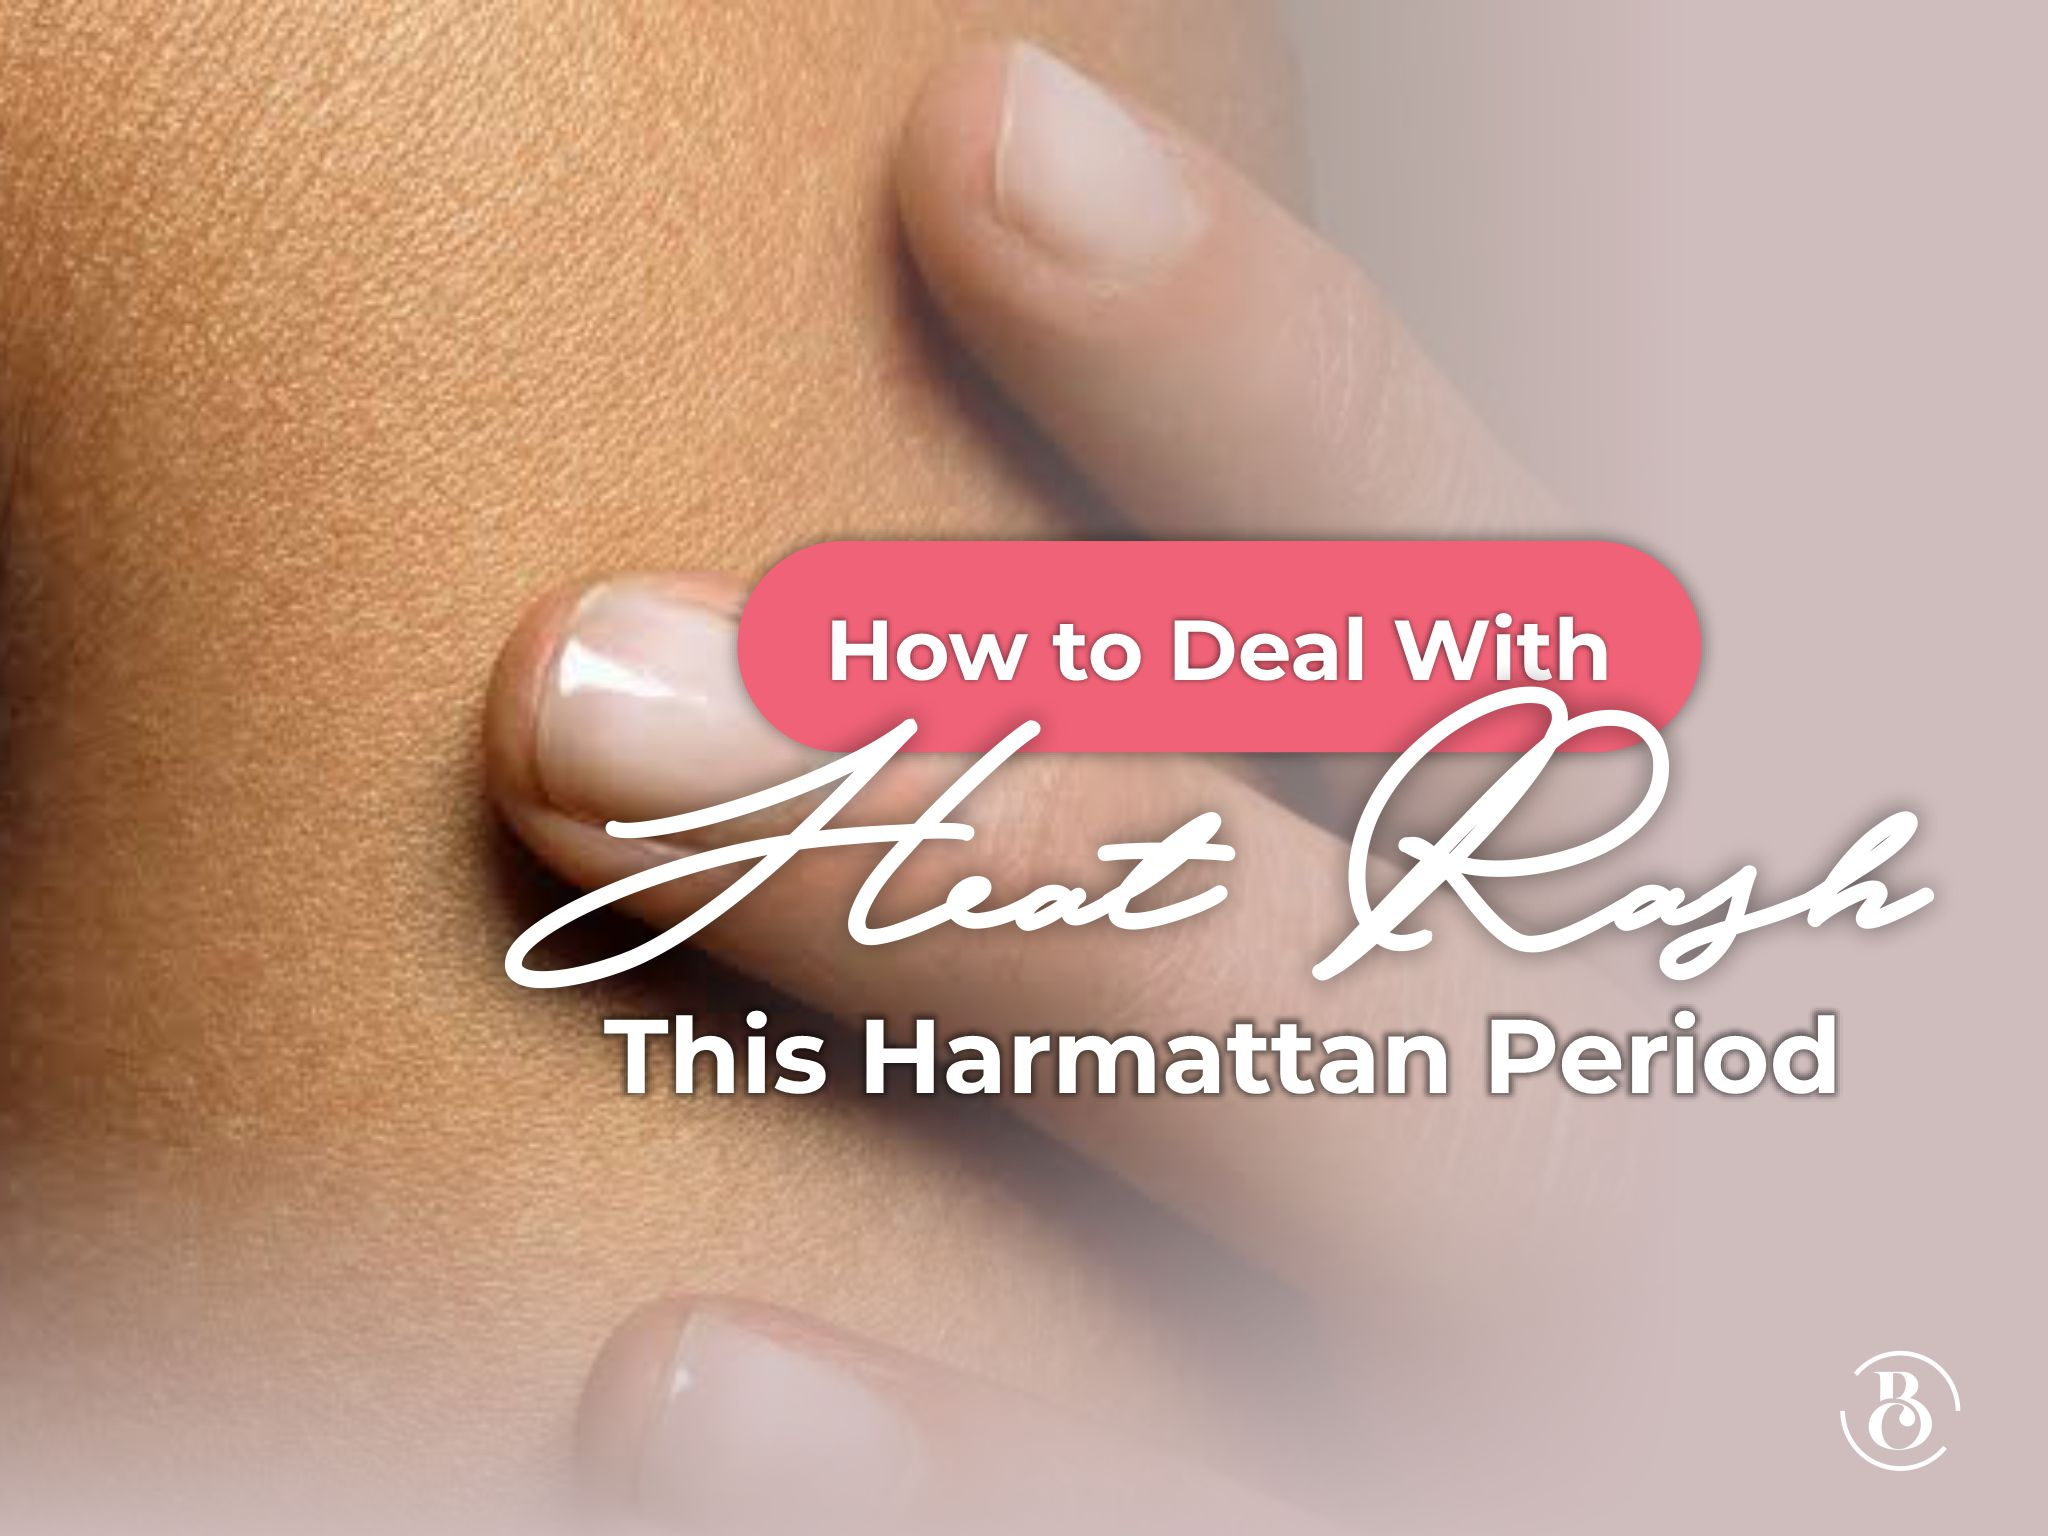 How to Deal with Heat Rash This Harmattan Period